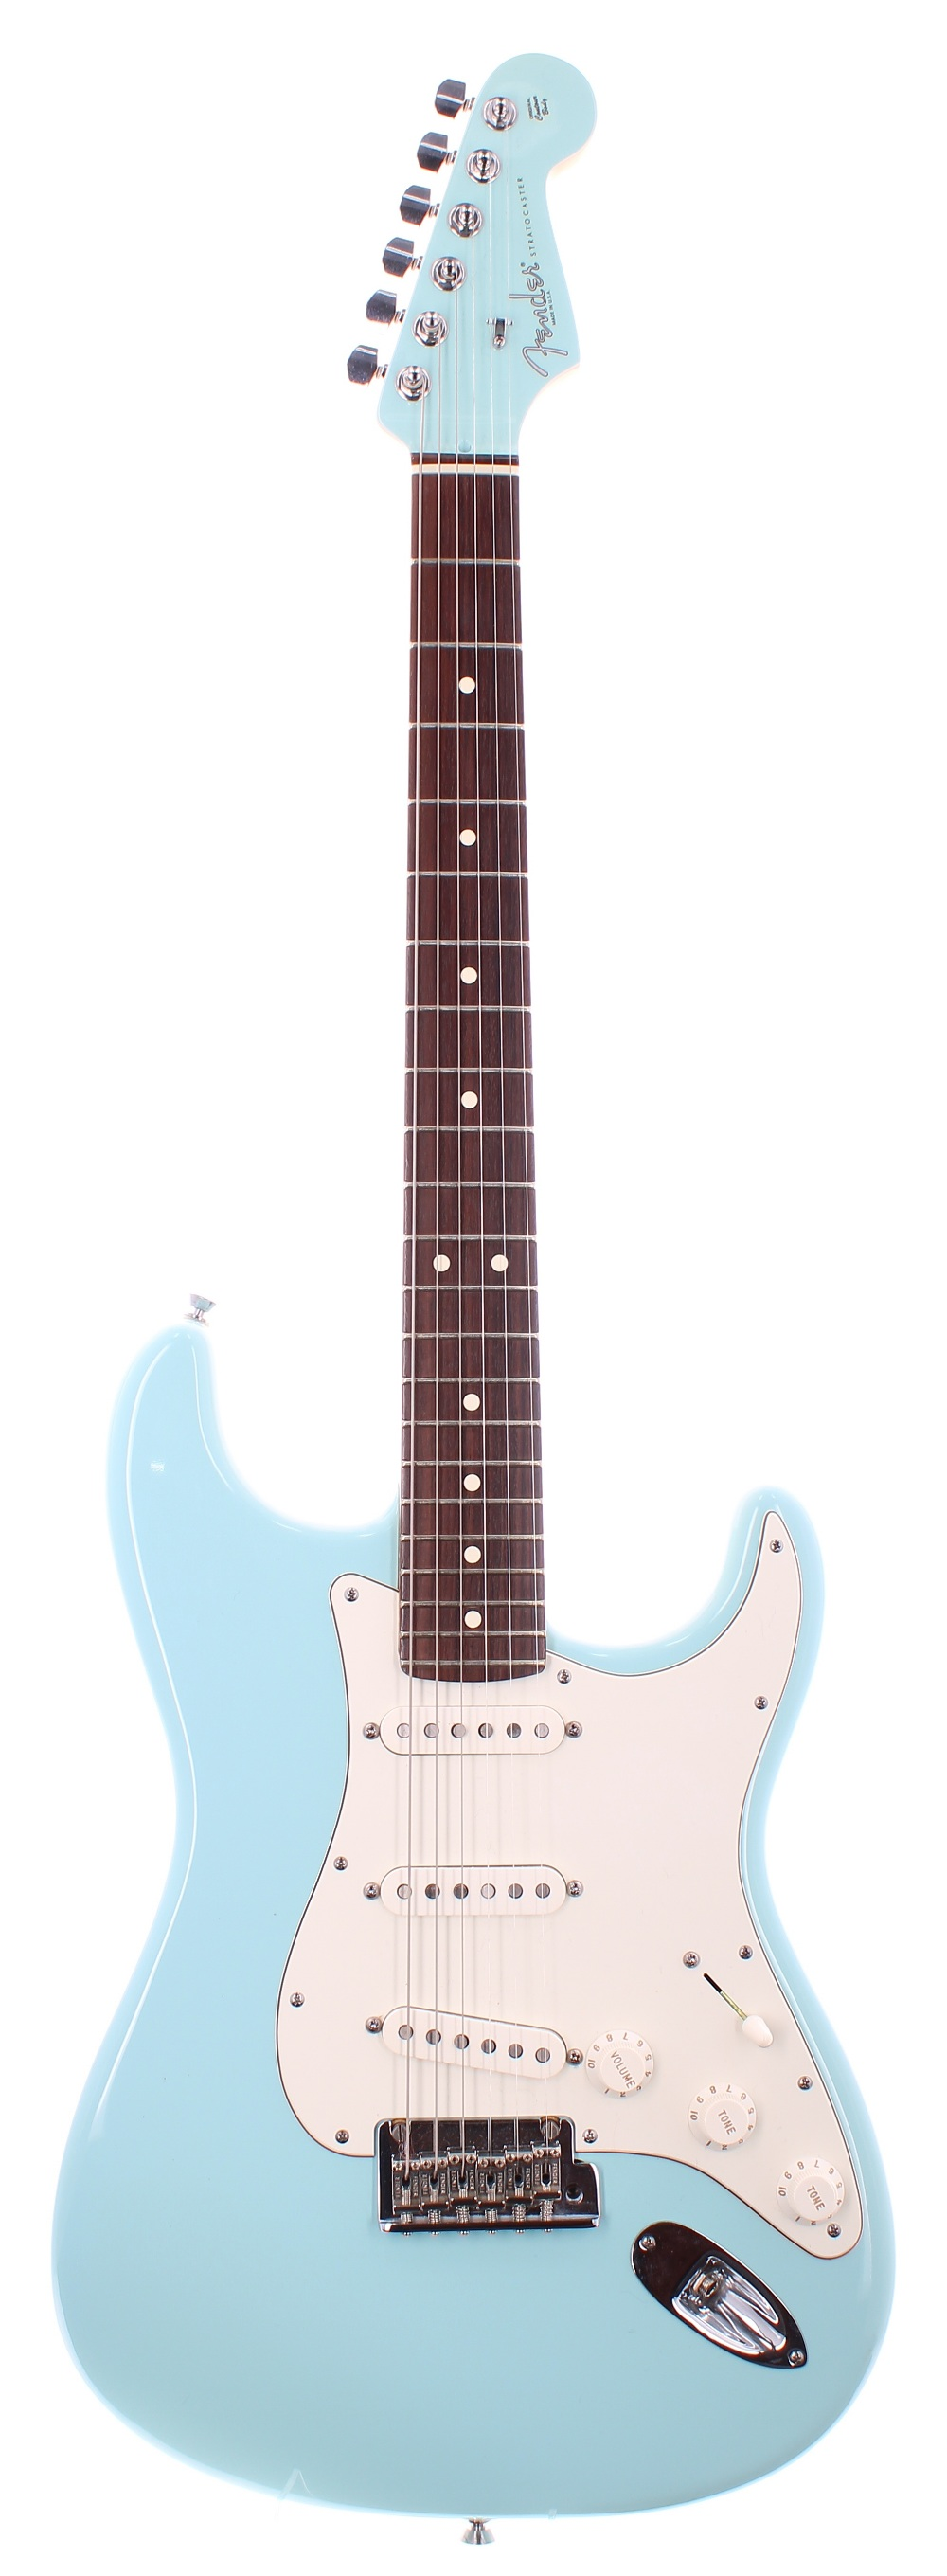 2009 Fender American Standard Special Edition Stratocaster electric guitar, made in USA, ser. no.